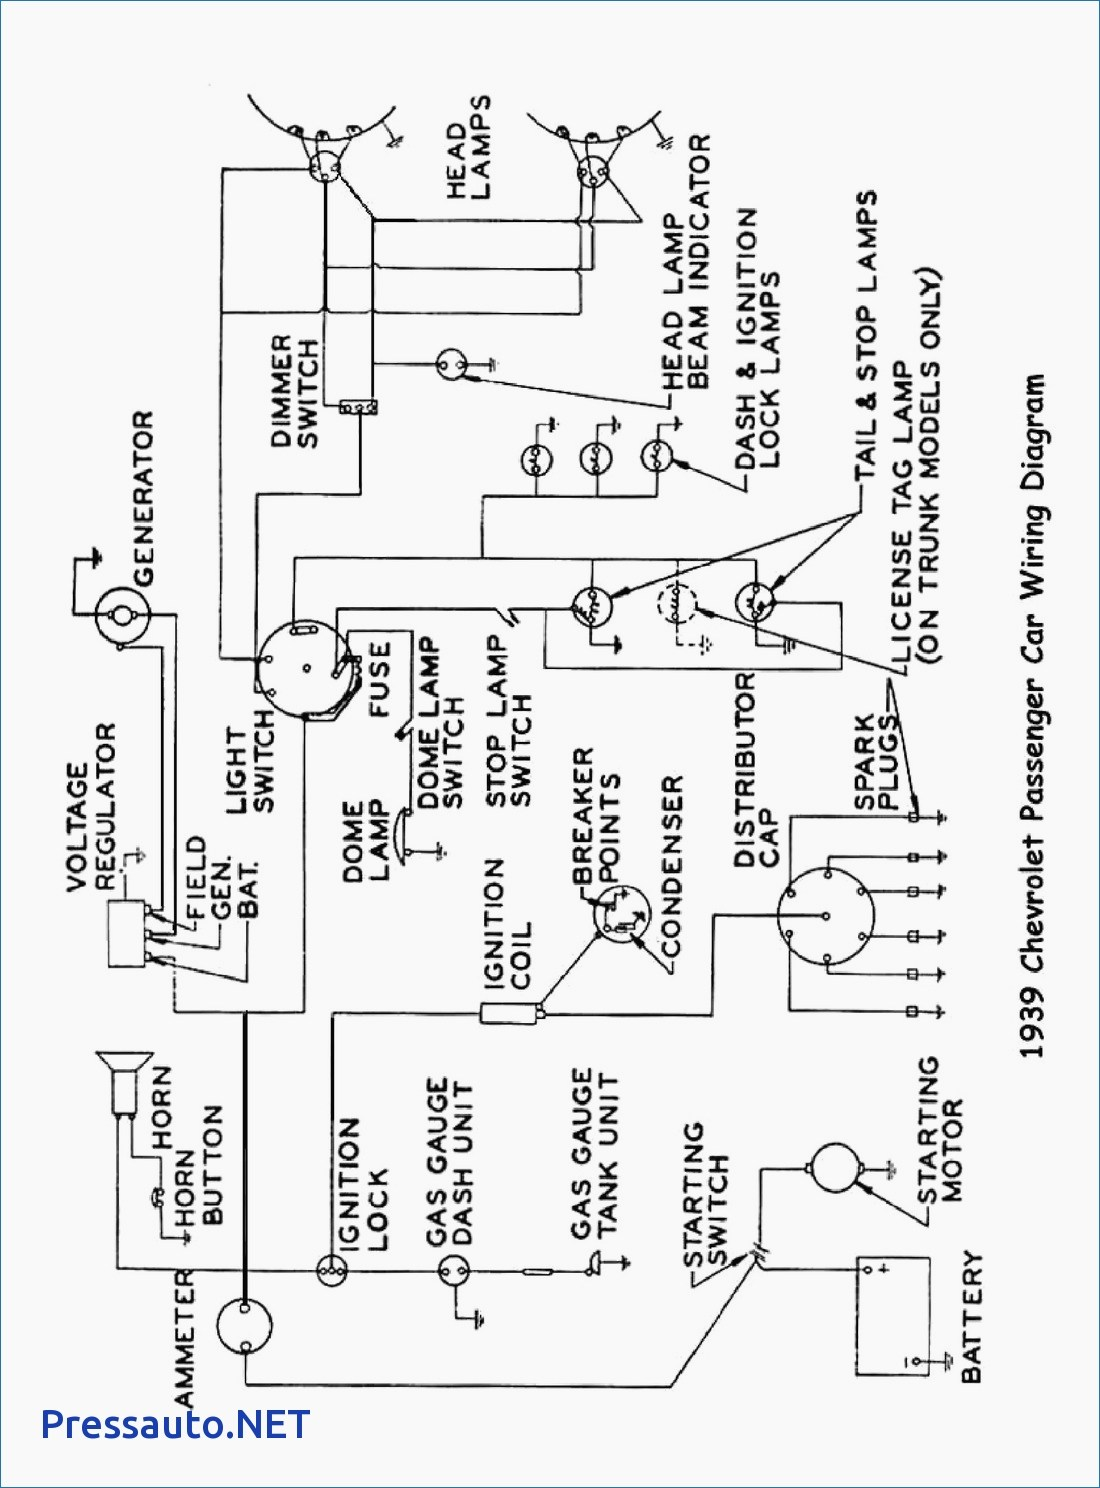 ng_9497] polaris snowmobile wiring diagrams schematic wiring  drosi ehir cajos odga mohammedshrine librar wiring 101